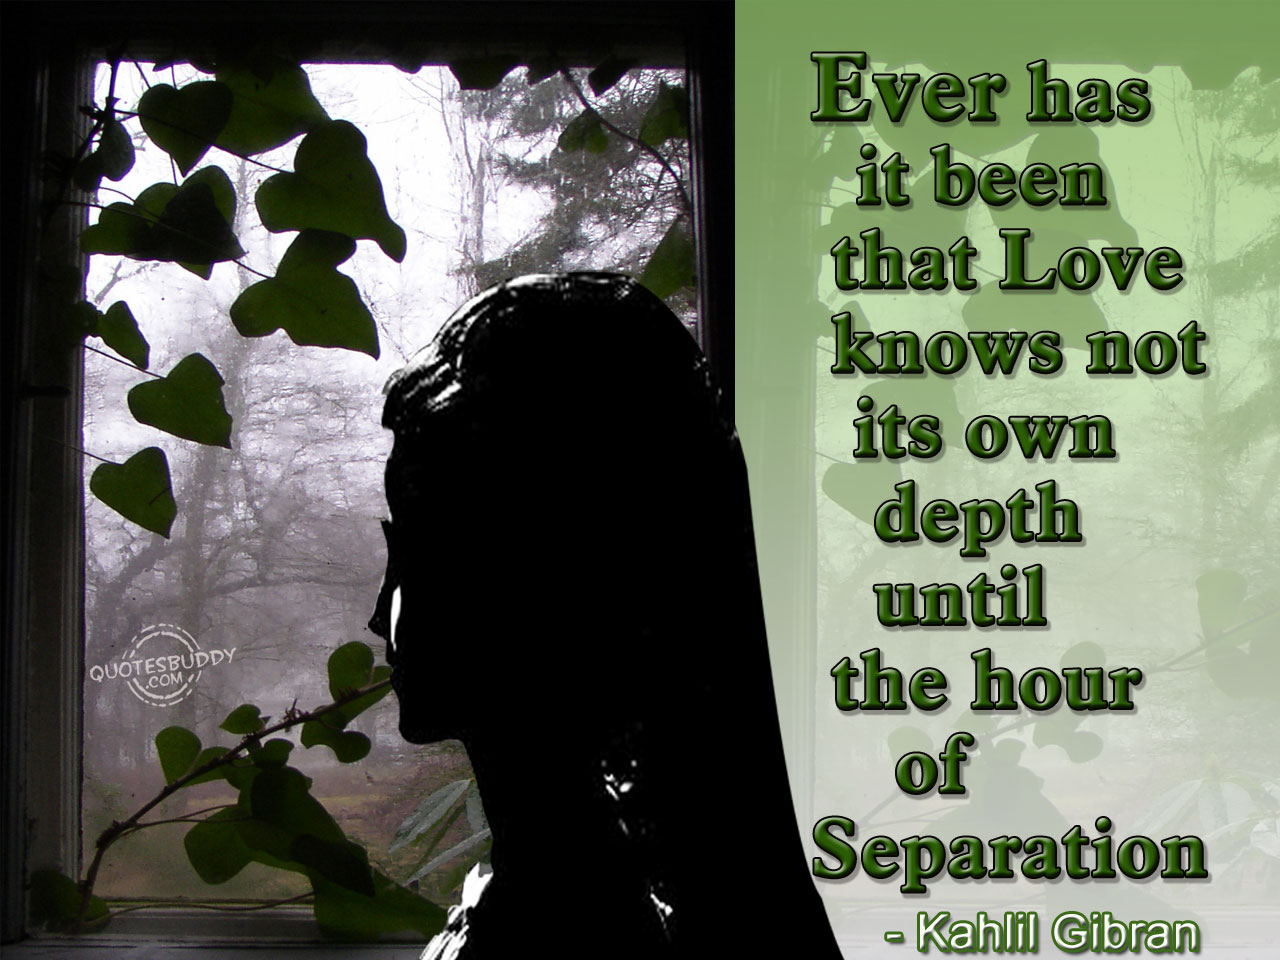 Famous quotes about Separation - Sualci Quotes 2019